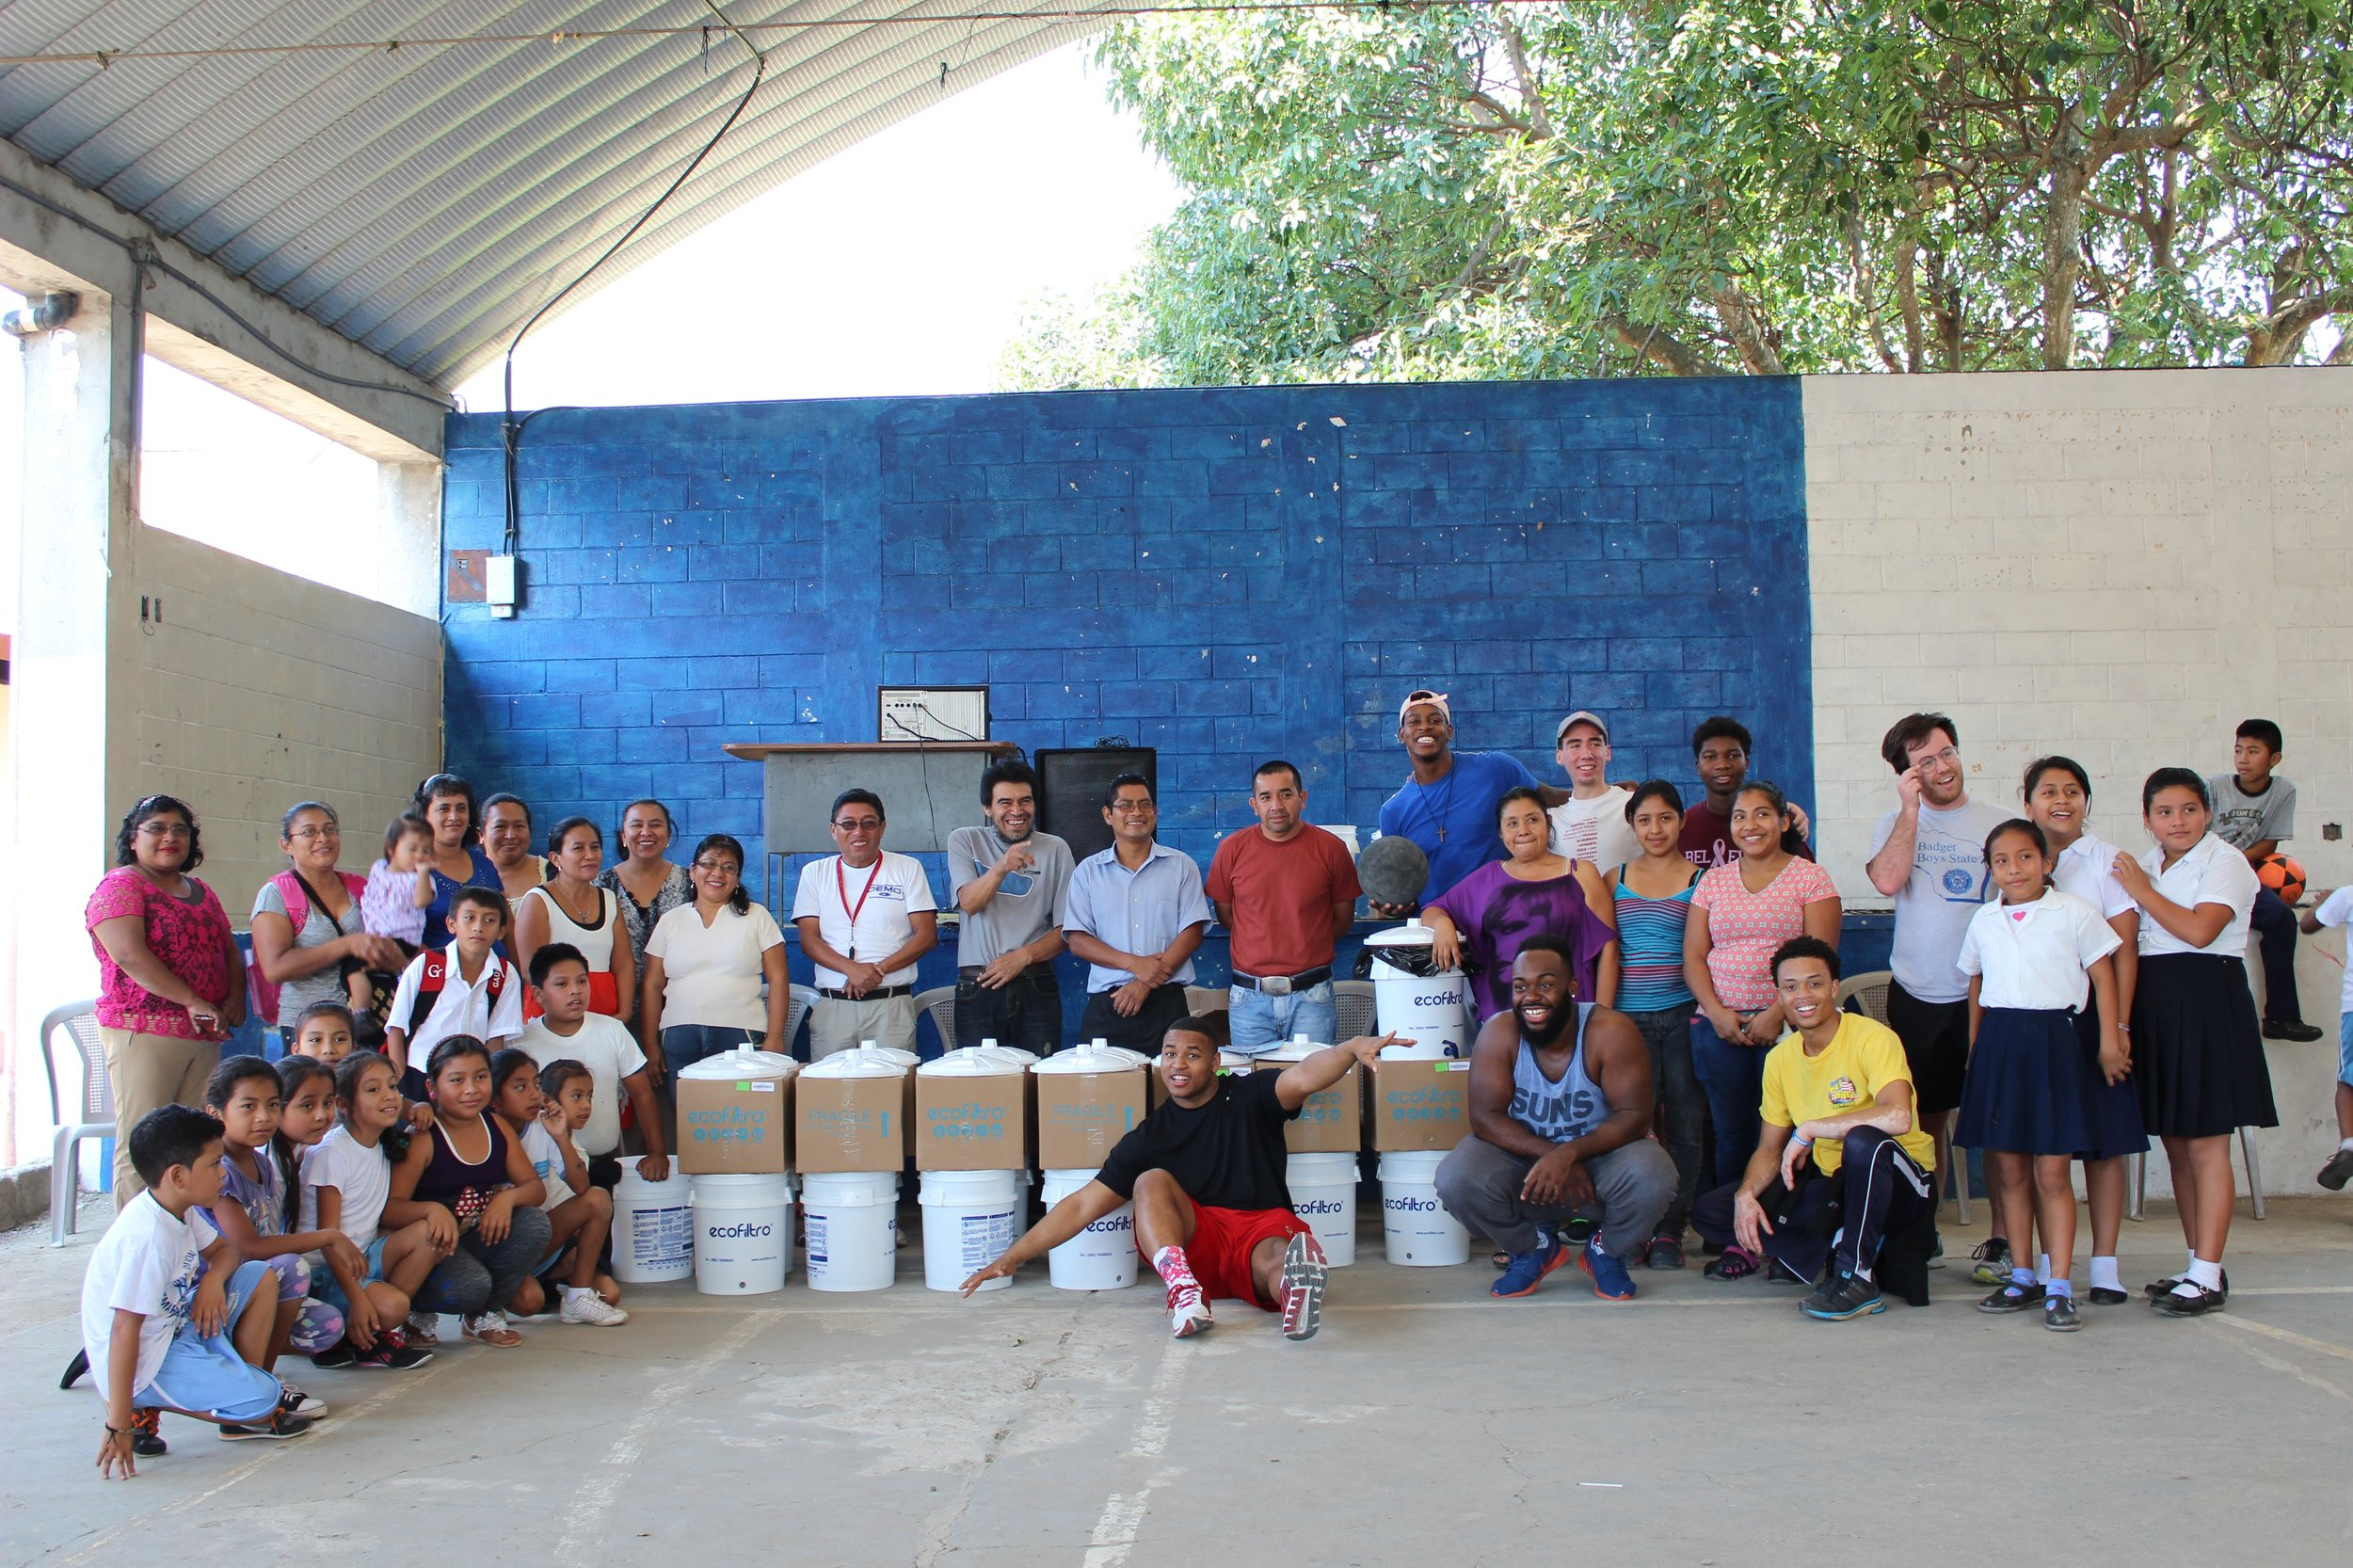 Antigua, Guatemala - Our team joined forces with the water filter company ecofiltro to install water filters in schools of 3 rural villages. This created a clean water source where the water had been causing diseases leading to deaths in the villages. On top of installing water filters our team also donated sports equipment, school/art supplies and toys to an afterschool program in one of the villages. Everything giving back totals just over $5,000